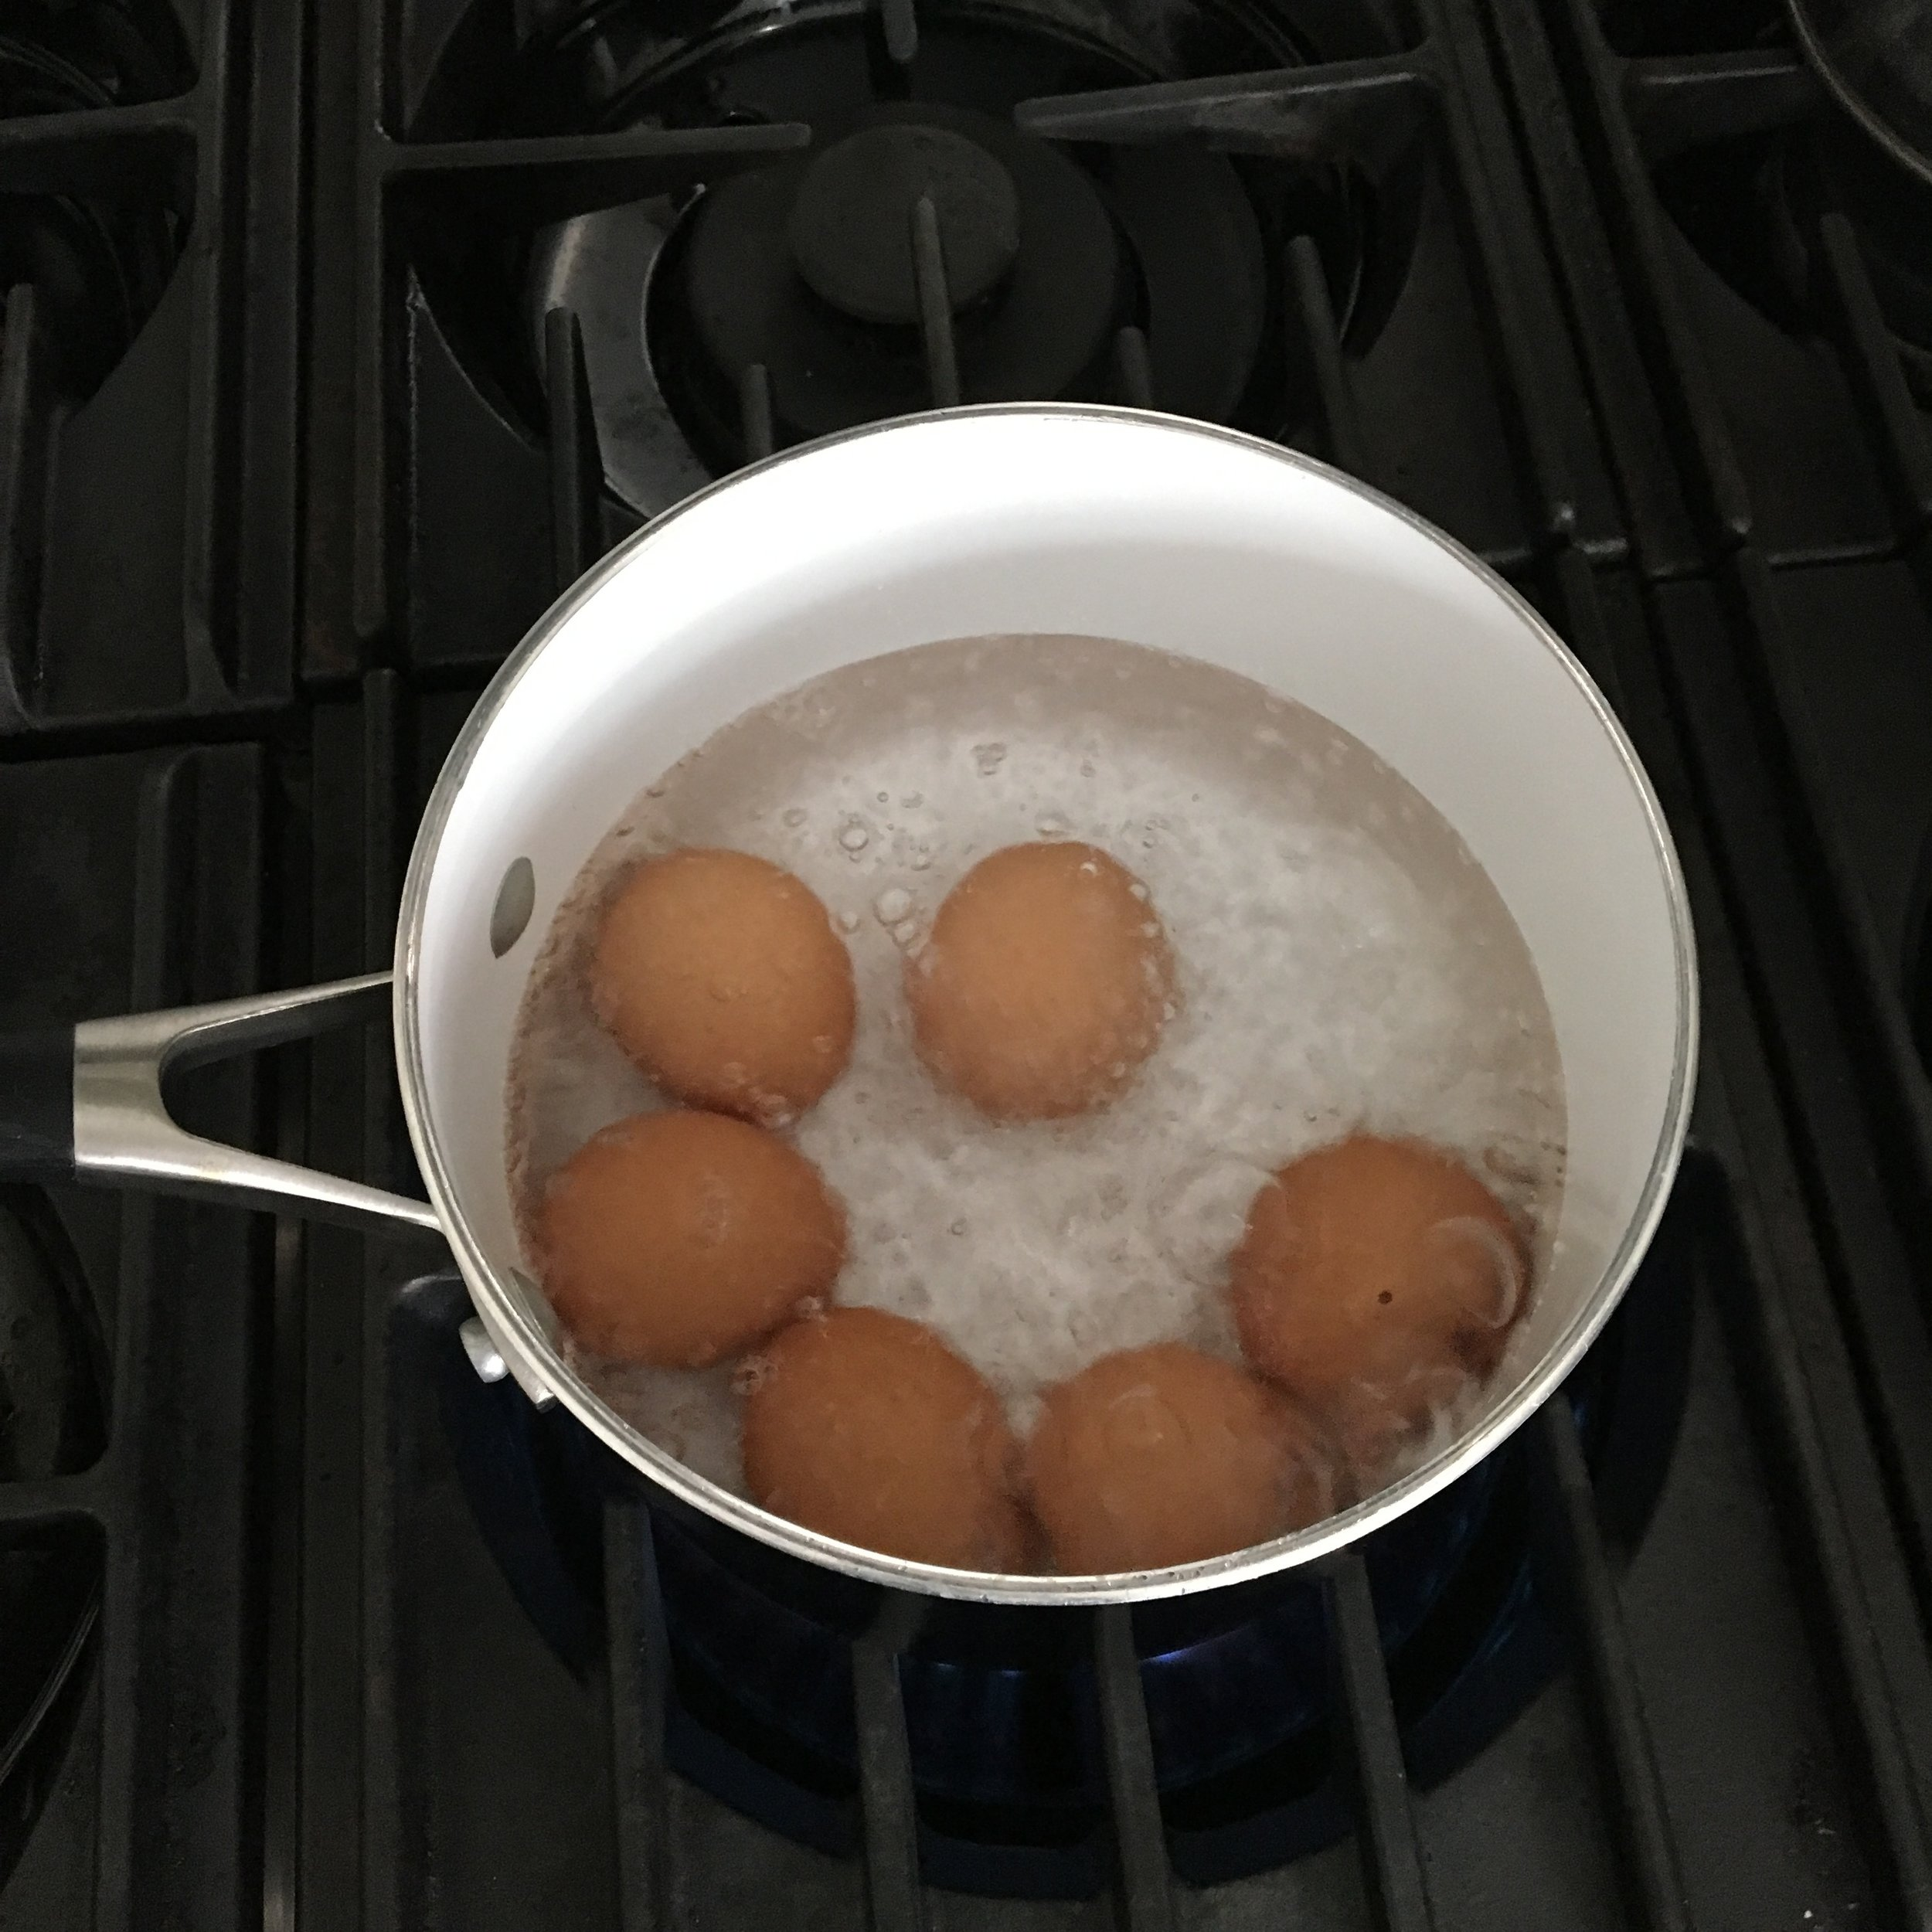 Step 3: Boil uncovered for exactly 6 minutes